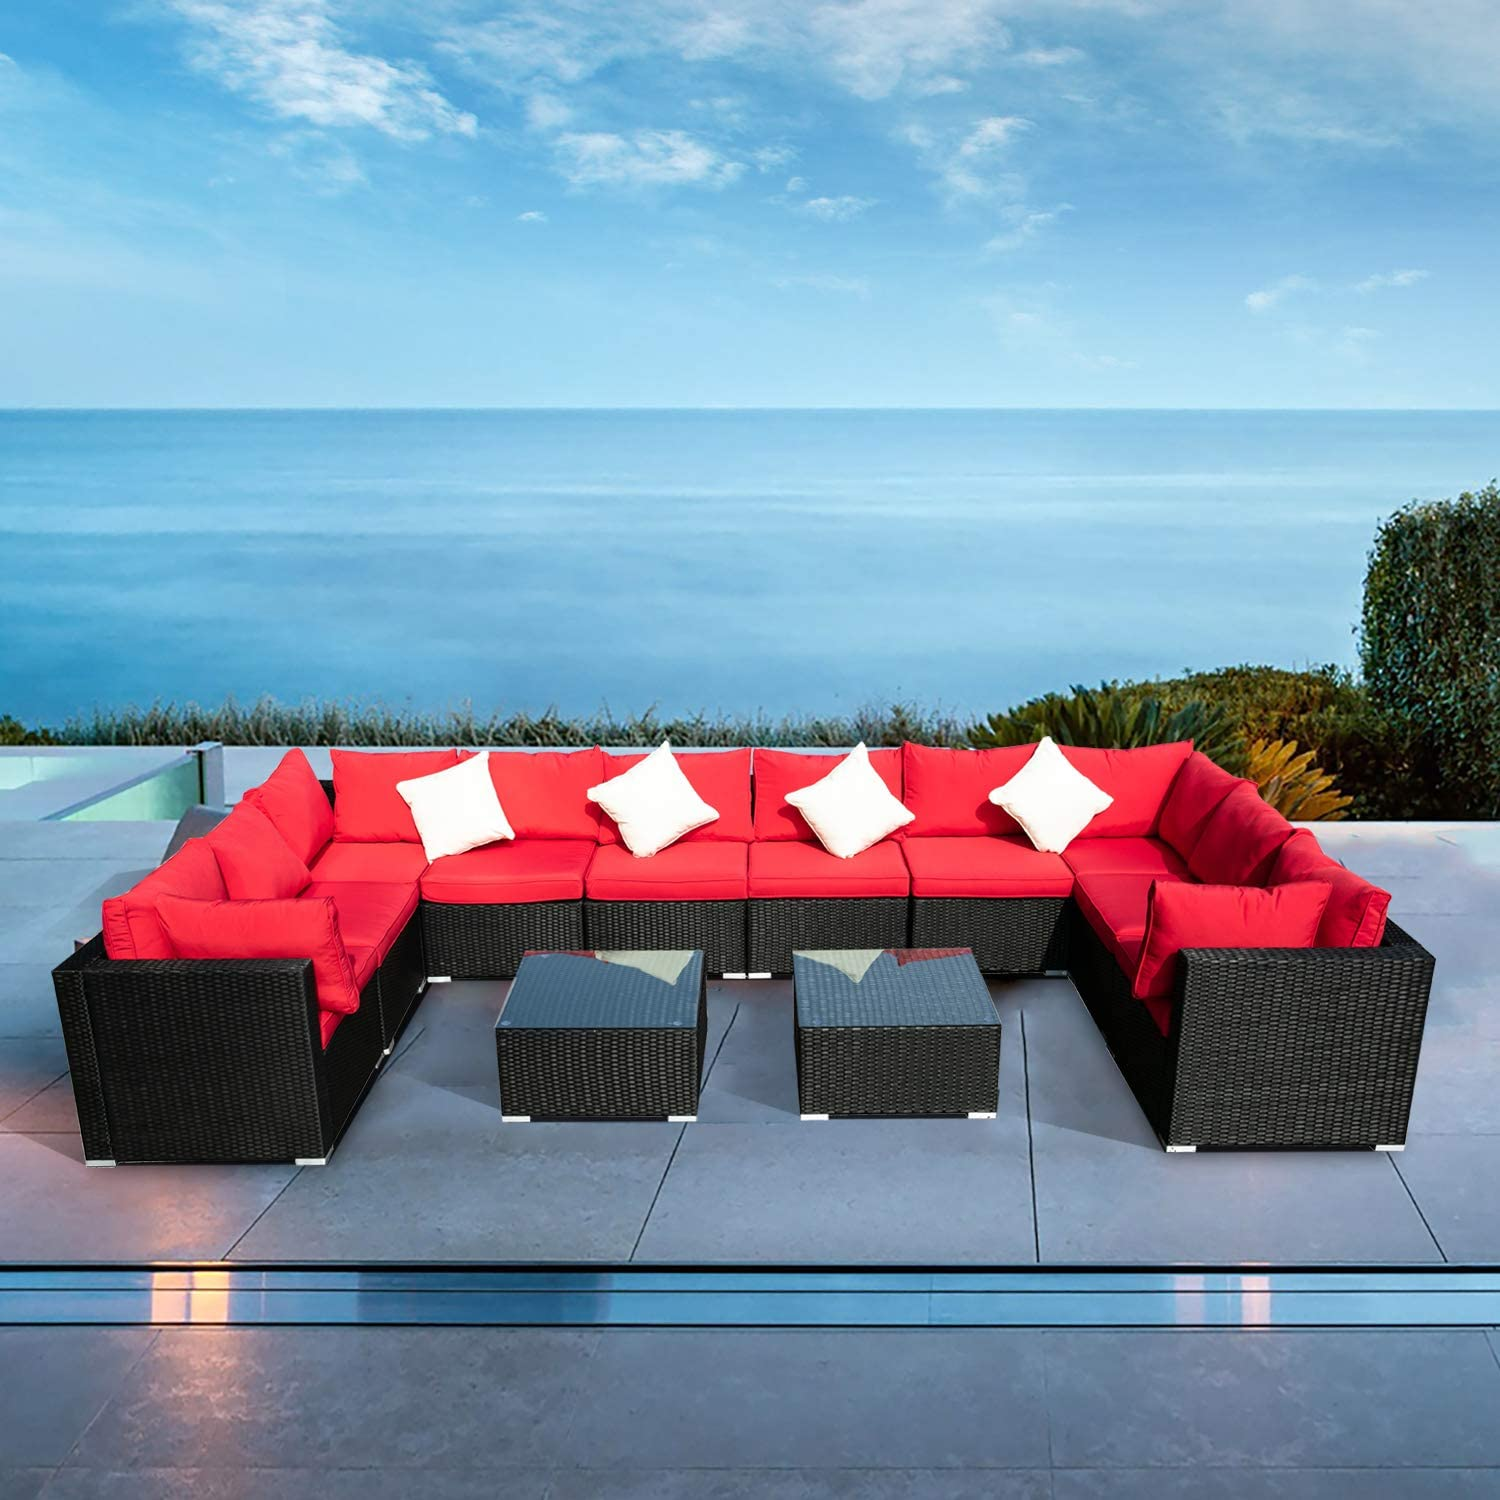 Klismos Outdoor Patio Furniture Set Rattan Wicker Sectional Sofa Conversation Set with Coffee Table and Pillows(Red 12PCS)